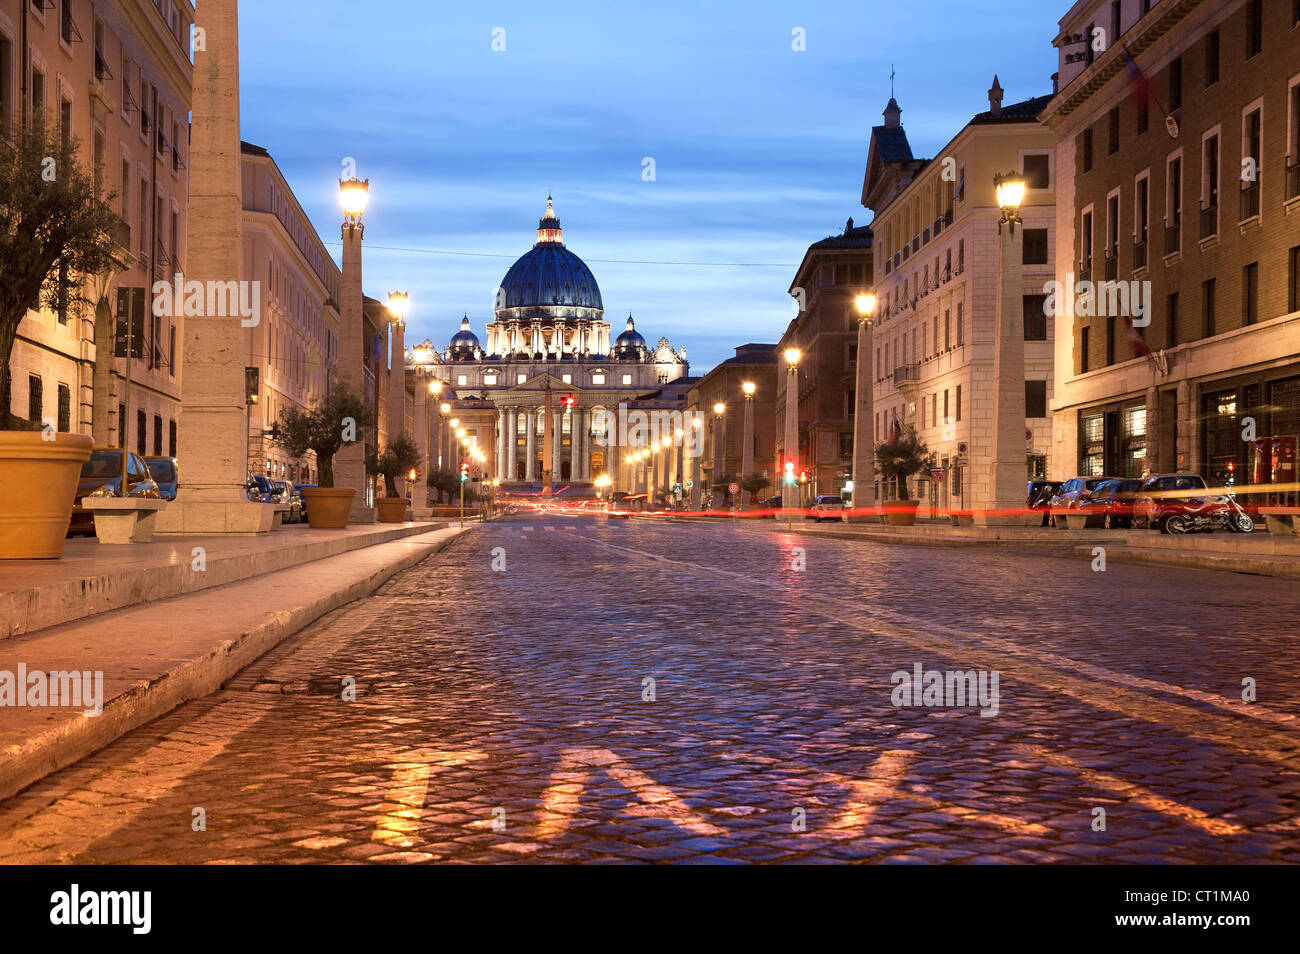 Rome at night. Italy Saint Peter's Basilica at night with trafic. Long exposure - Stock Image